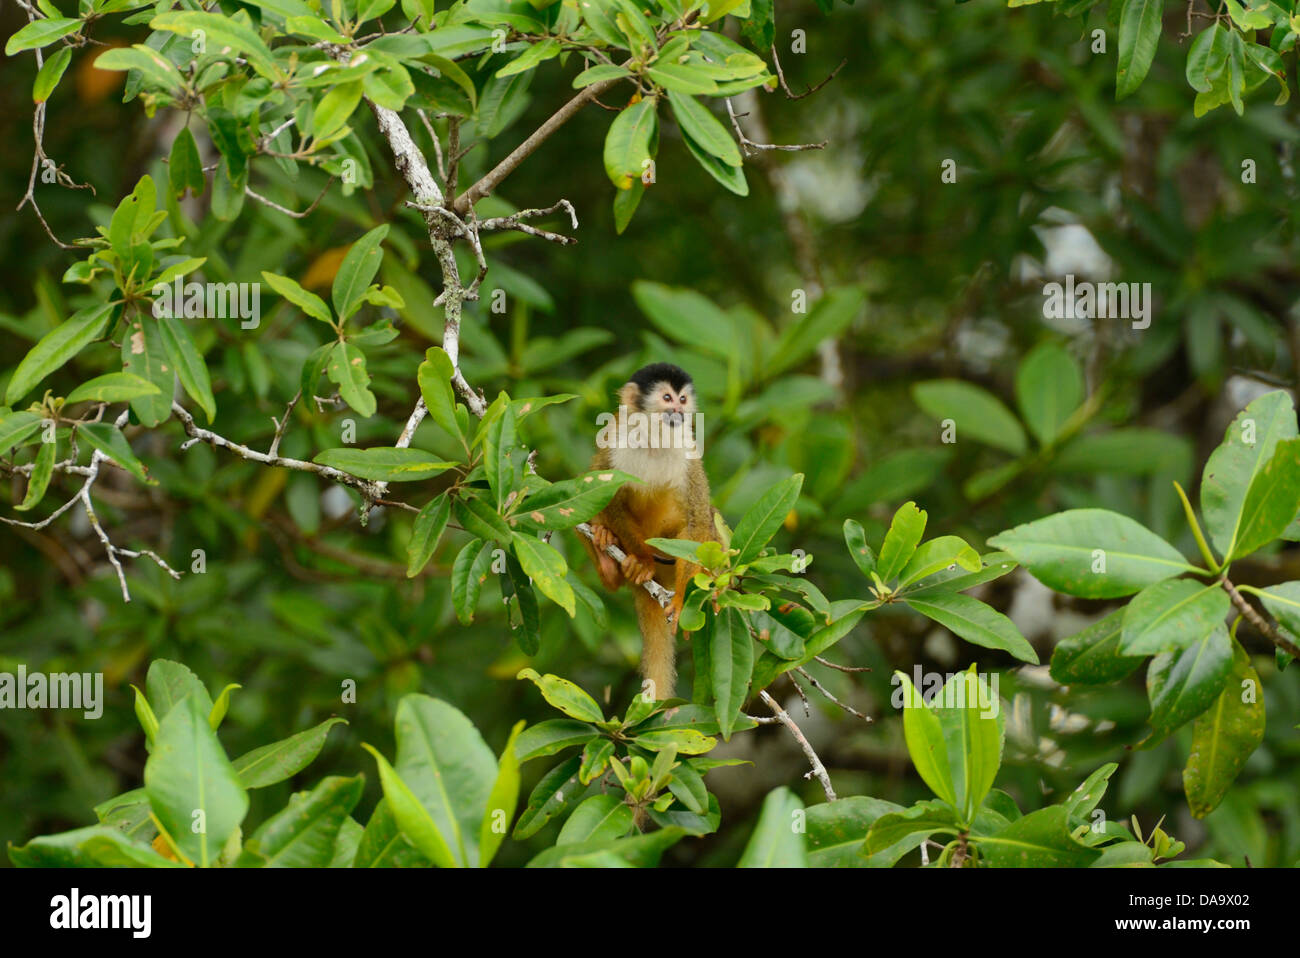 Pacific, mangrove, forest, Corcovado, National Park, Osa Peninsula, Costa Rica, Central America, monkey, wildlife, - Stock Image